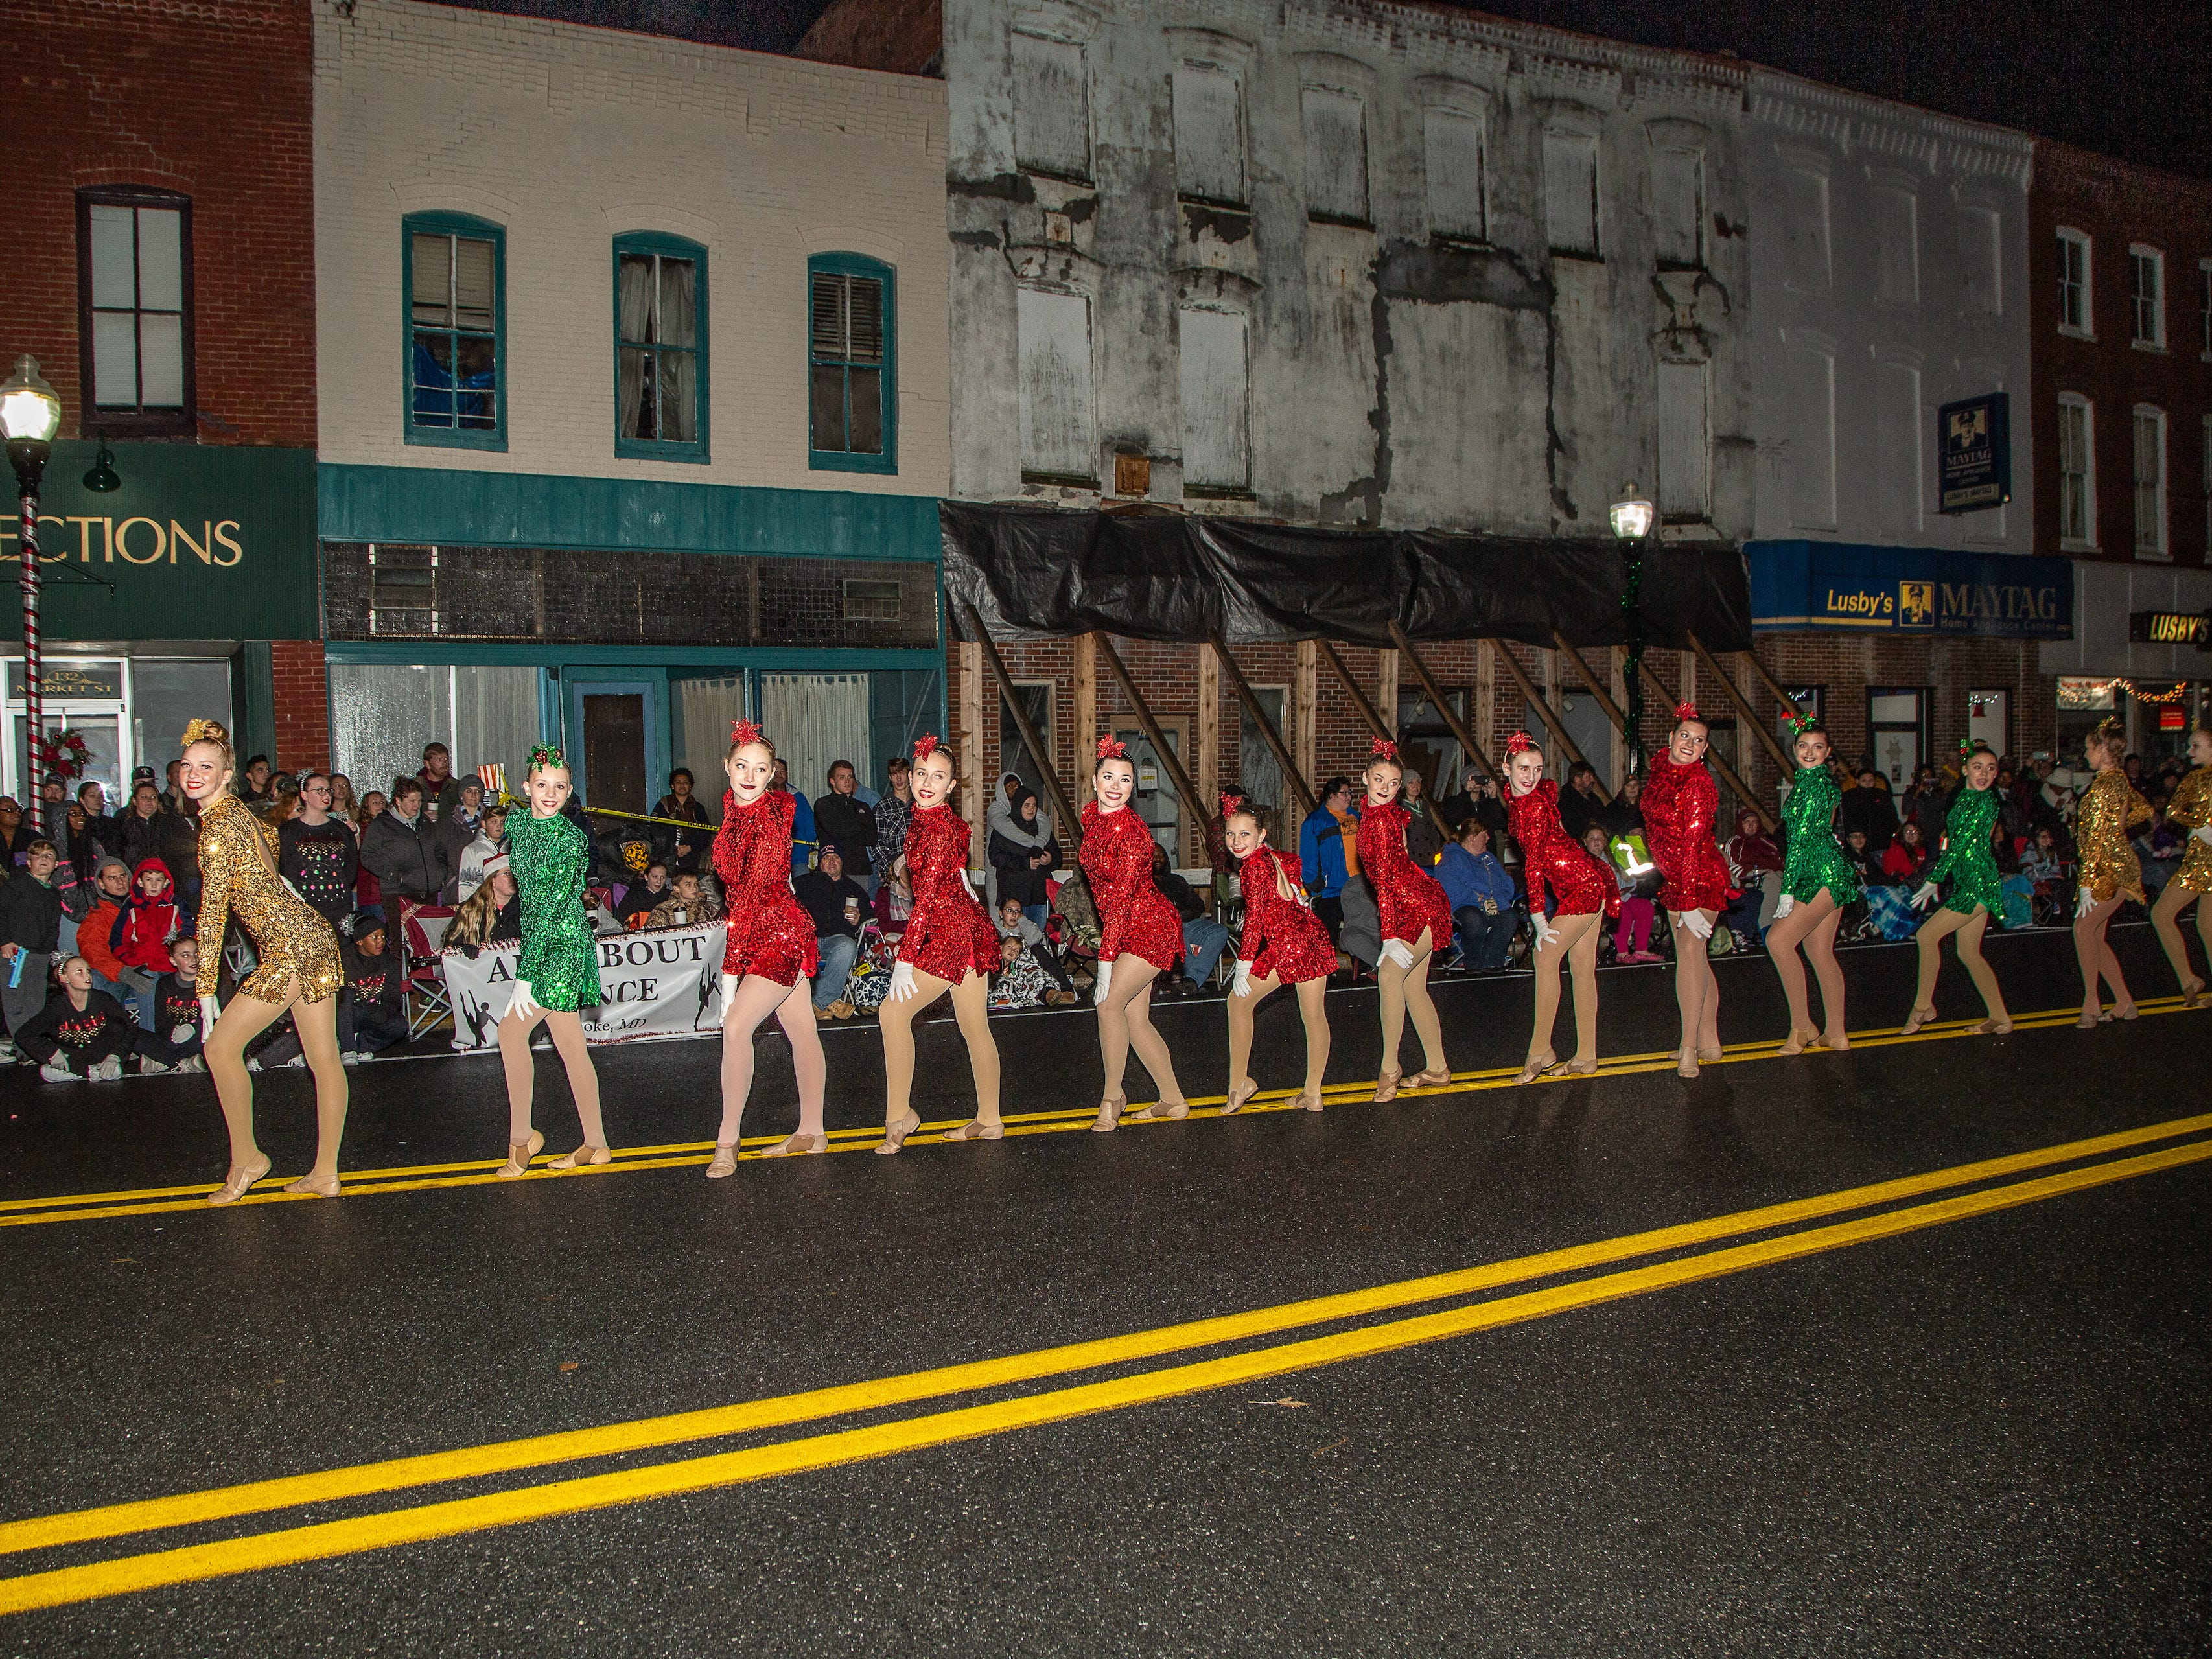 Members of All About Dance from Pocomoke perform at the annual Christmas parade.